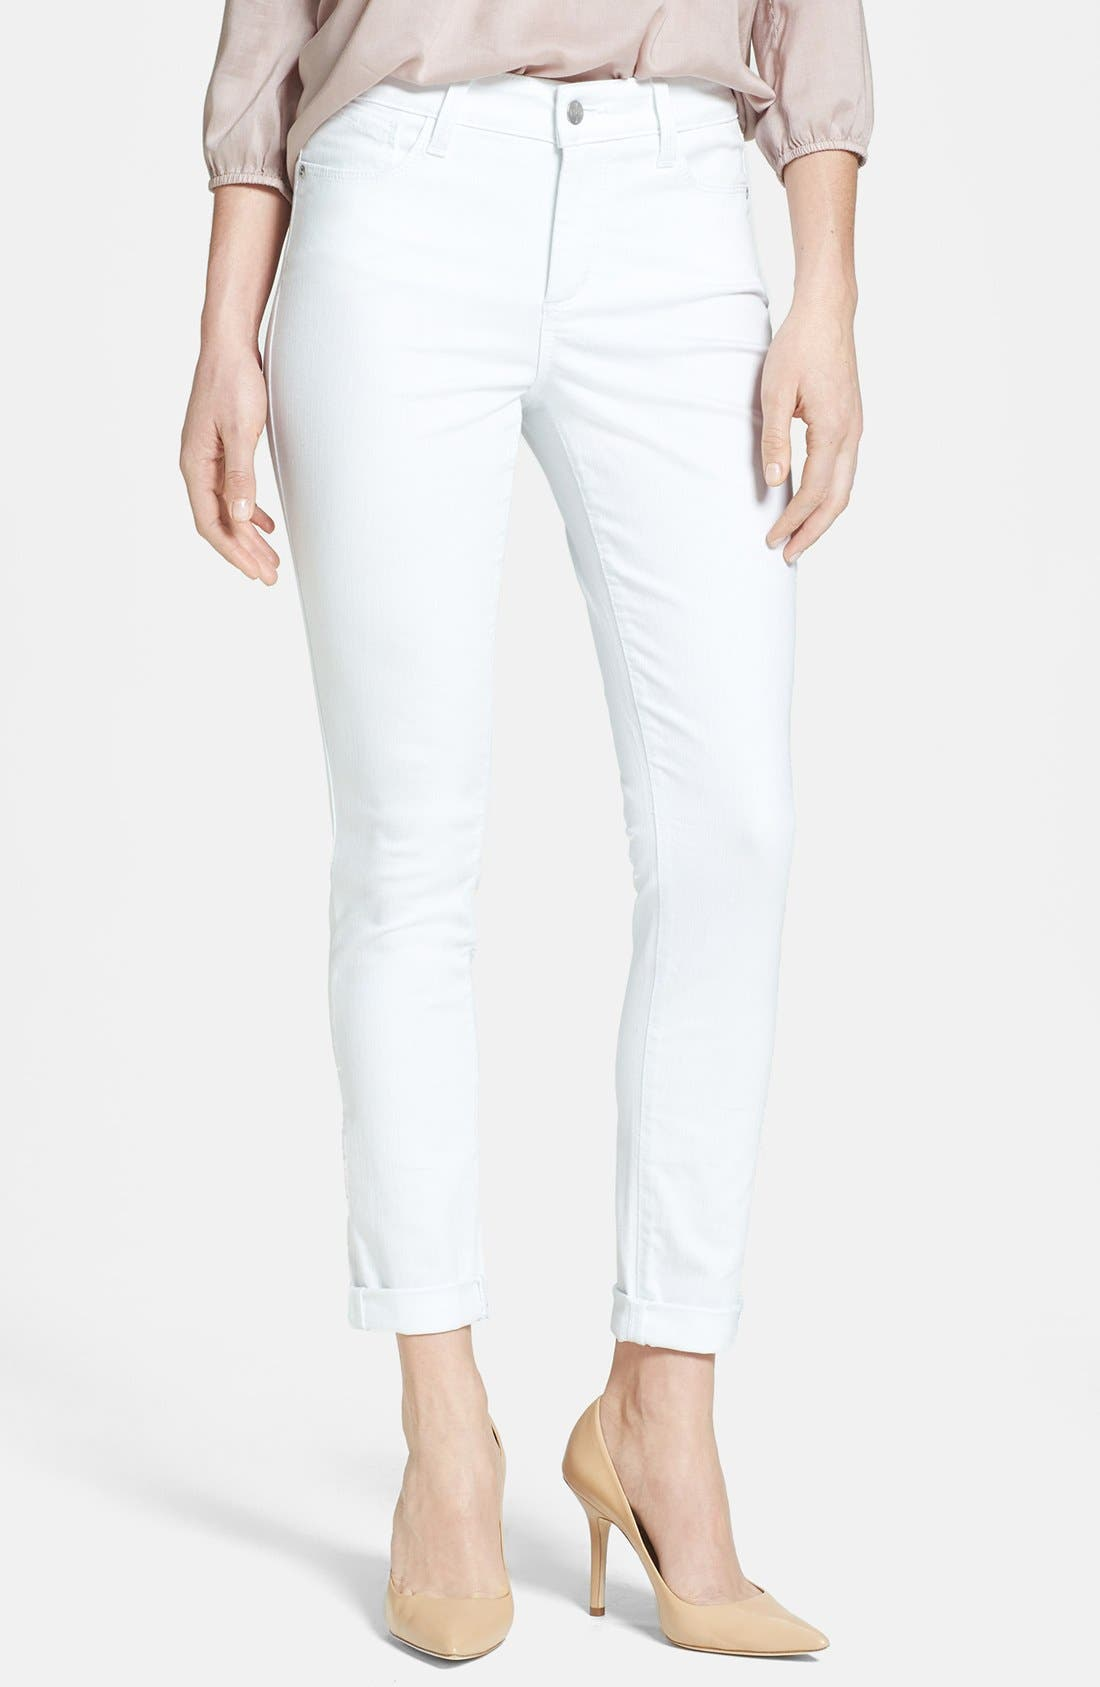 Main Image - NYDJ 'Anabelle' Stretch Skinny Jeans (Optic White)